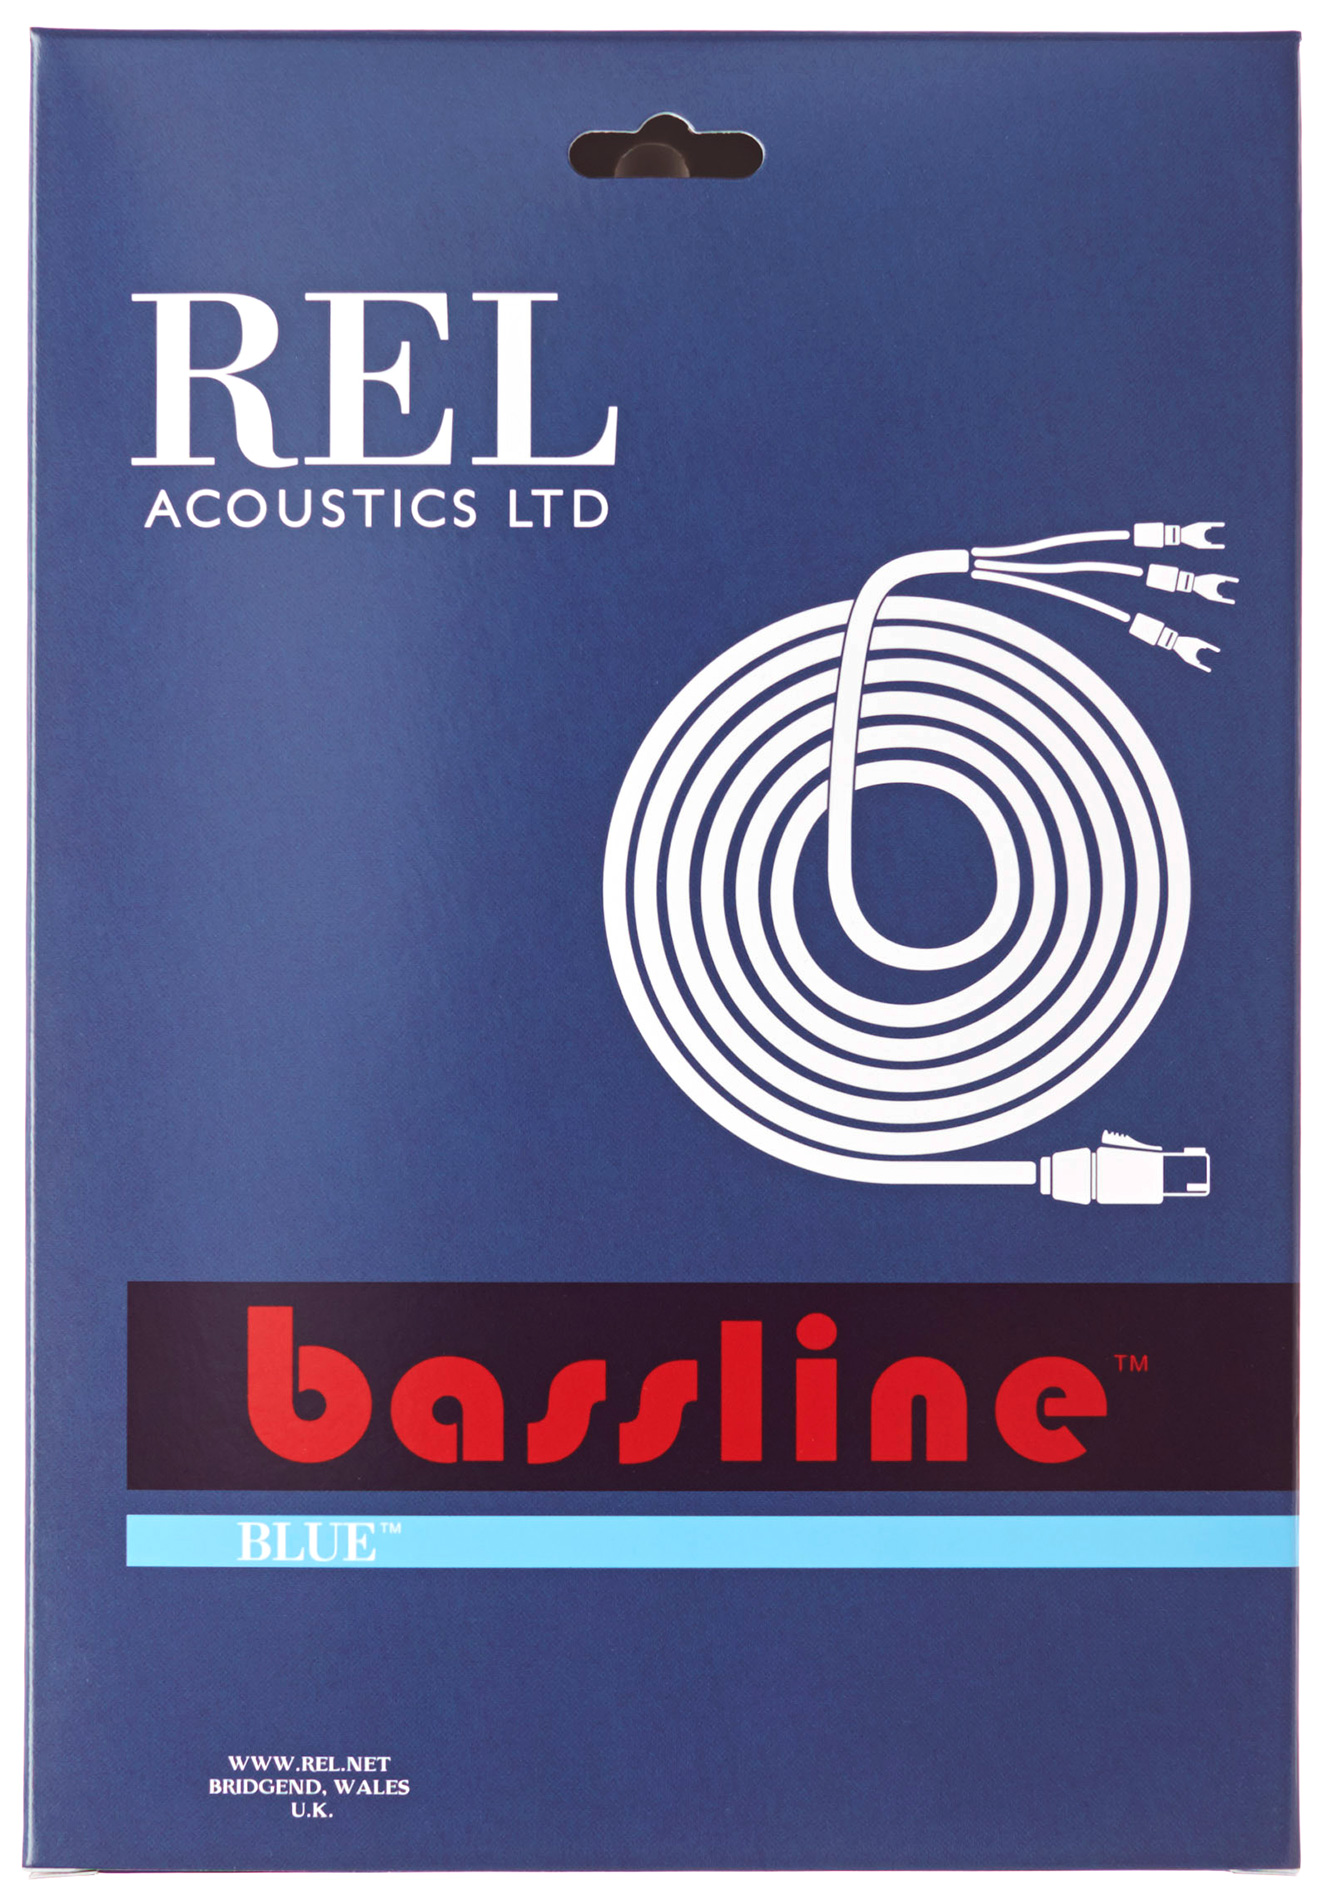 Bassline Cable21340 rel bassline blue subwoofer cable rel speakon wiring diagram at webbmarketing.co